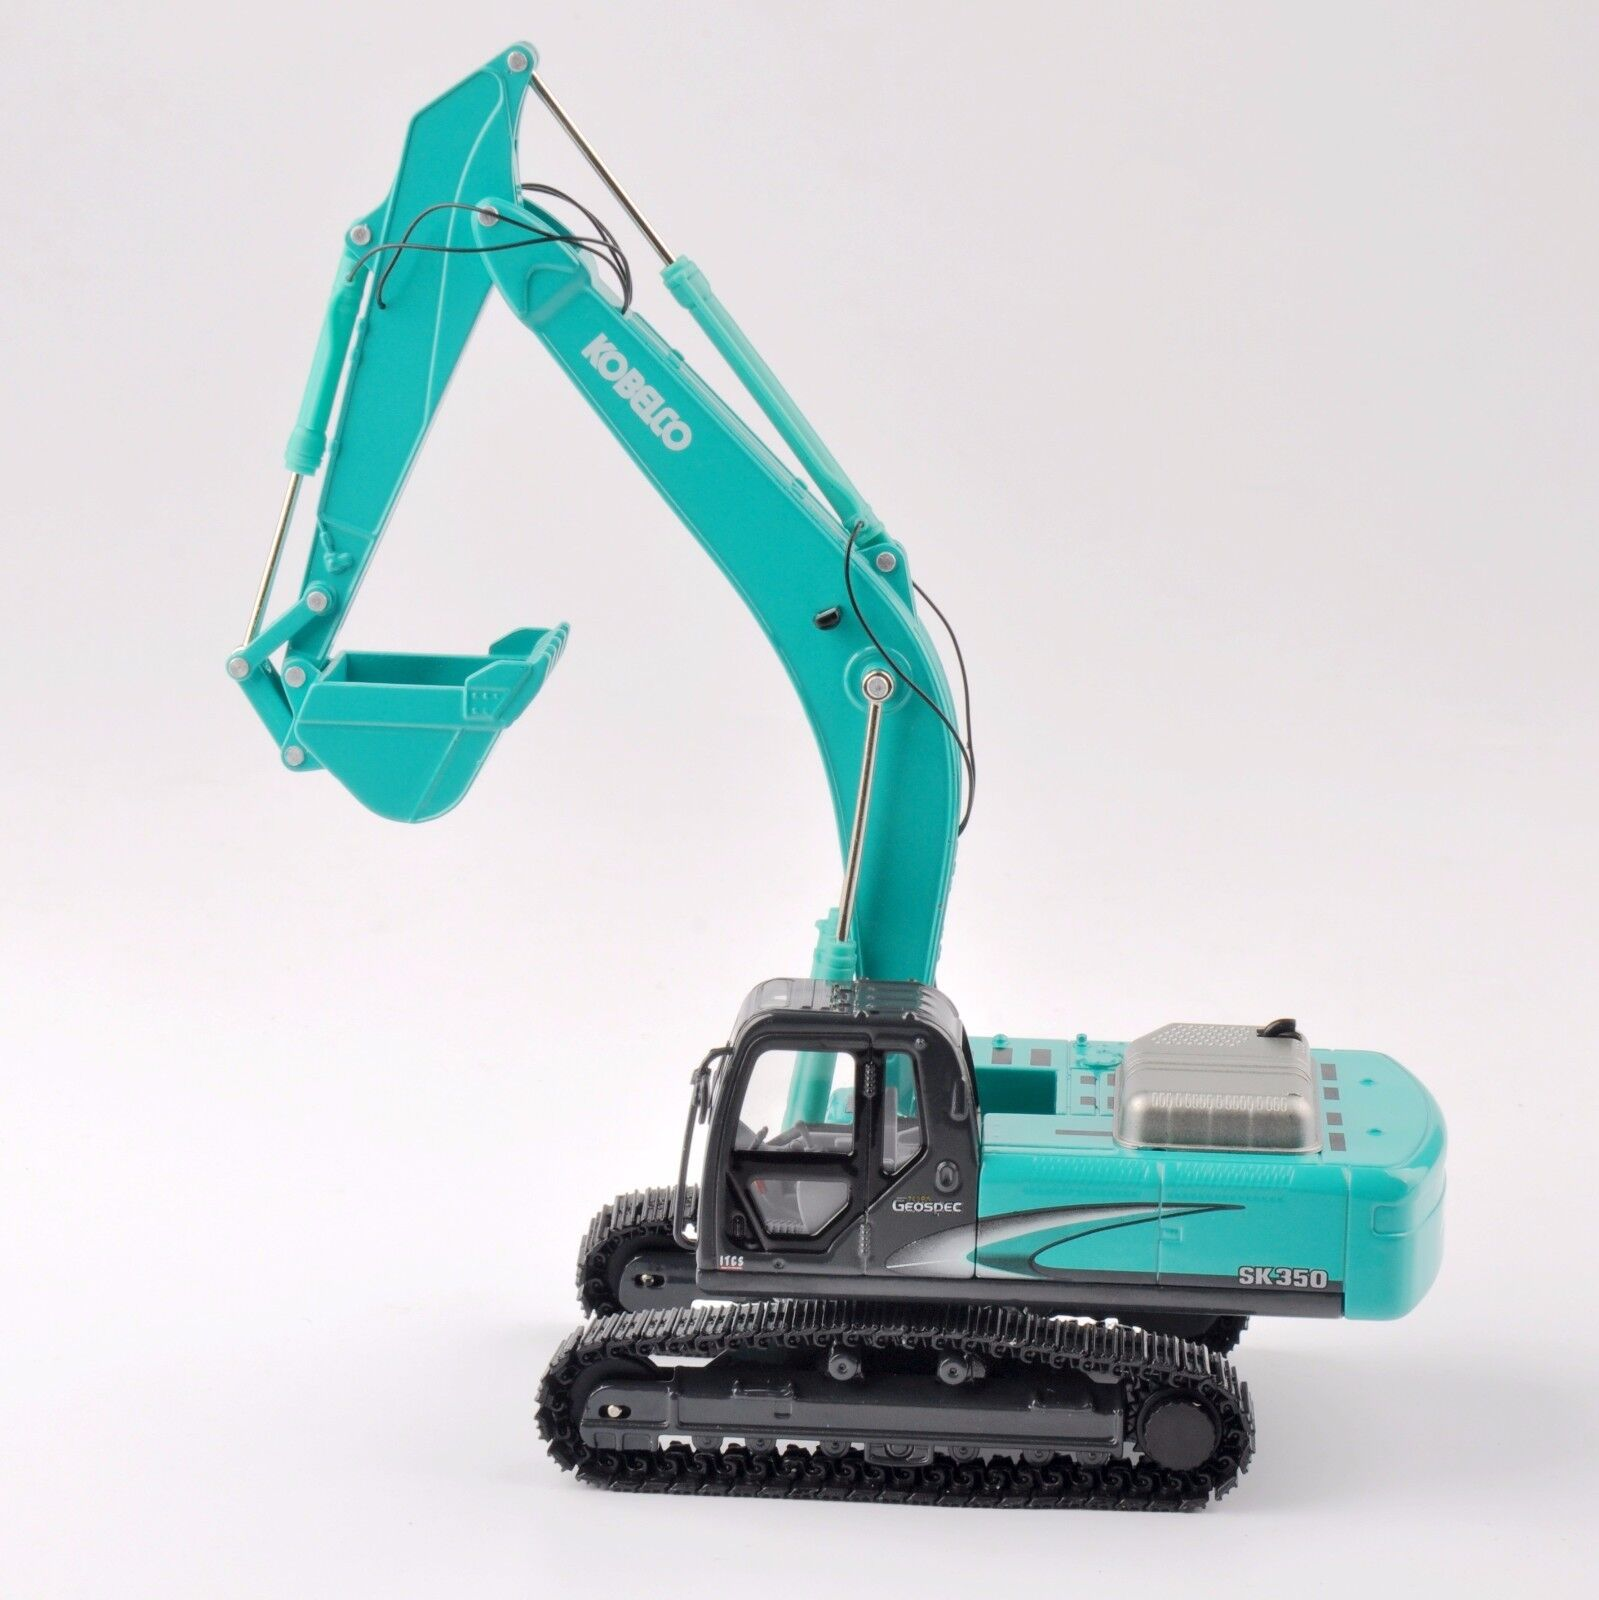 KOBELCO SK-350 1 50th 50th 50th Scale Crawler Excavator Engineering Vehicles Car Model Toy 7b1f5b